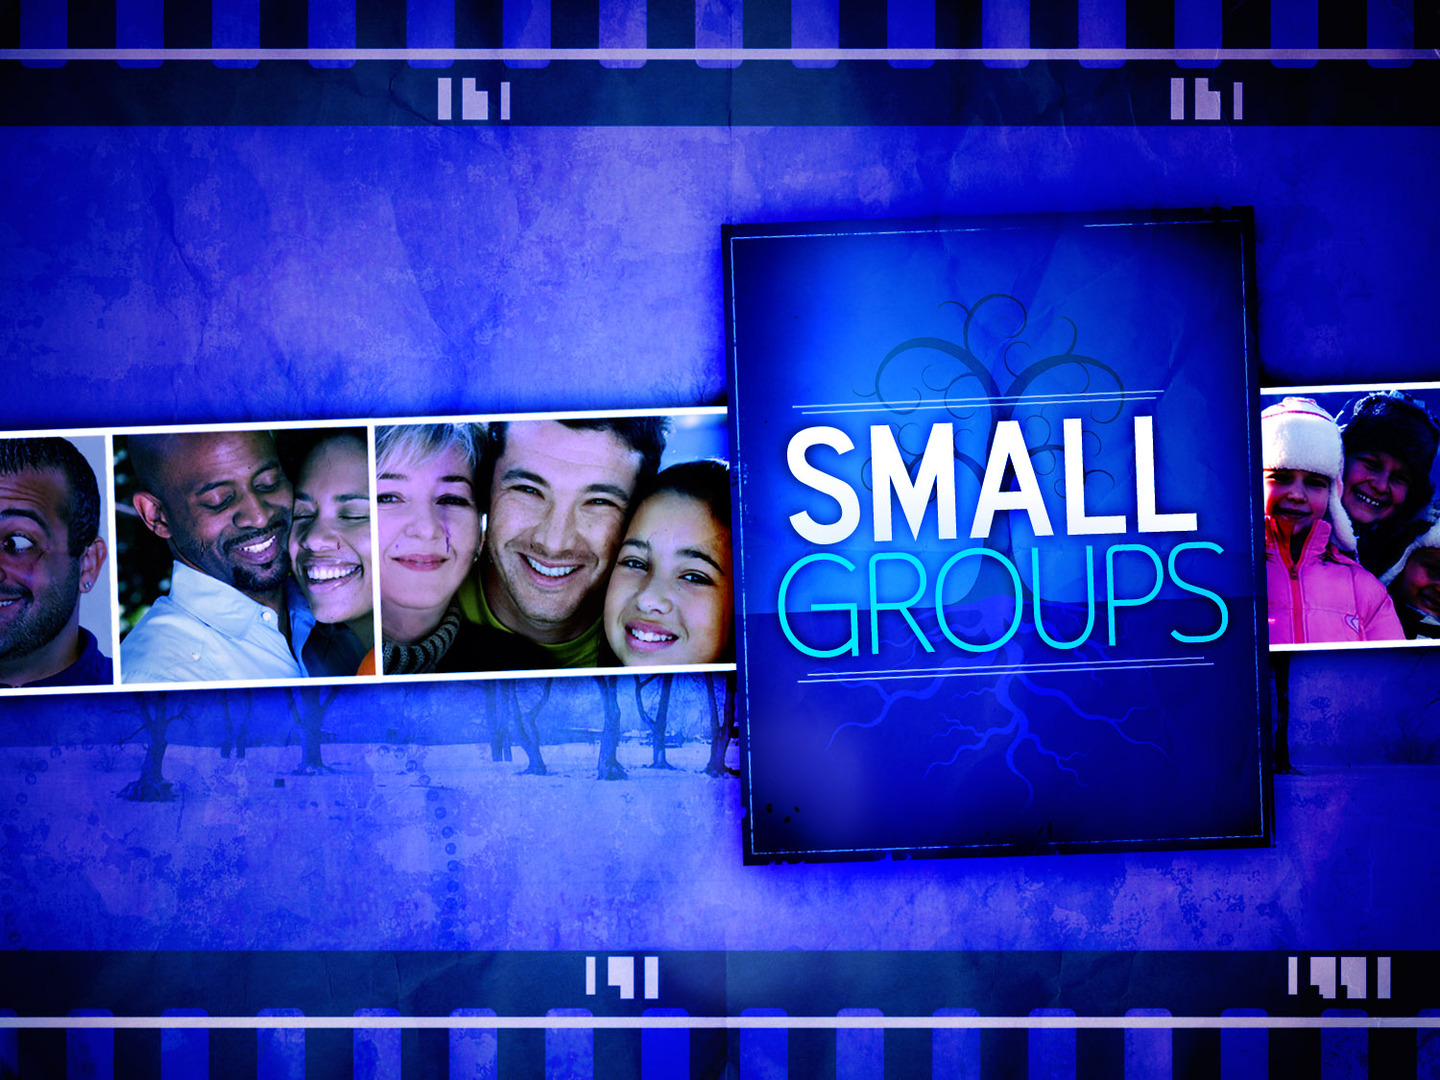 small_groups-title-1-still-4x3